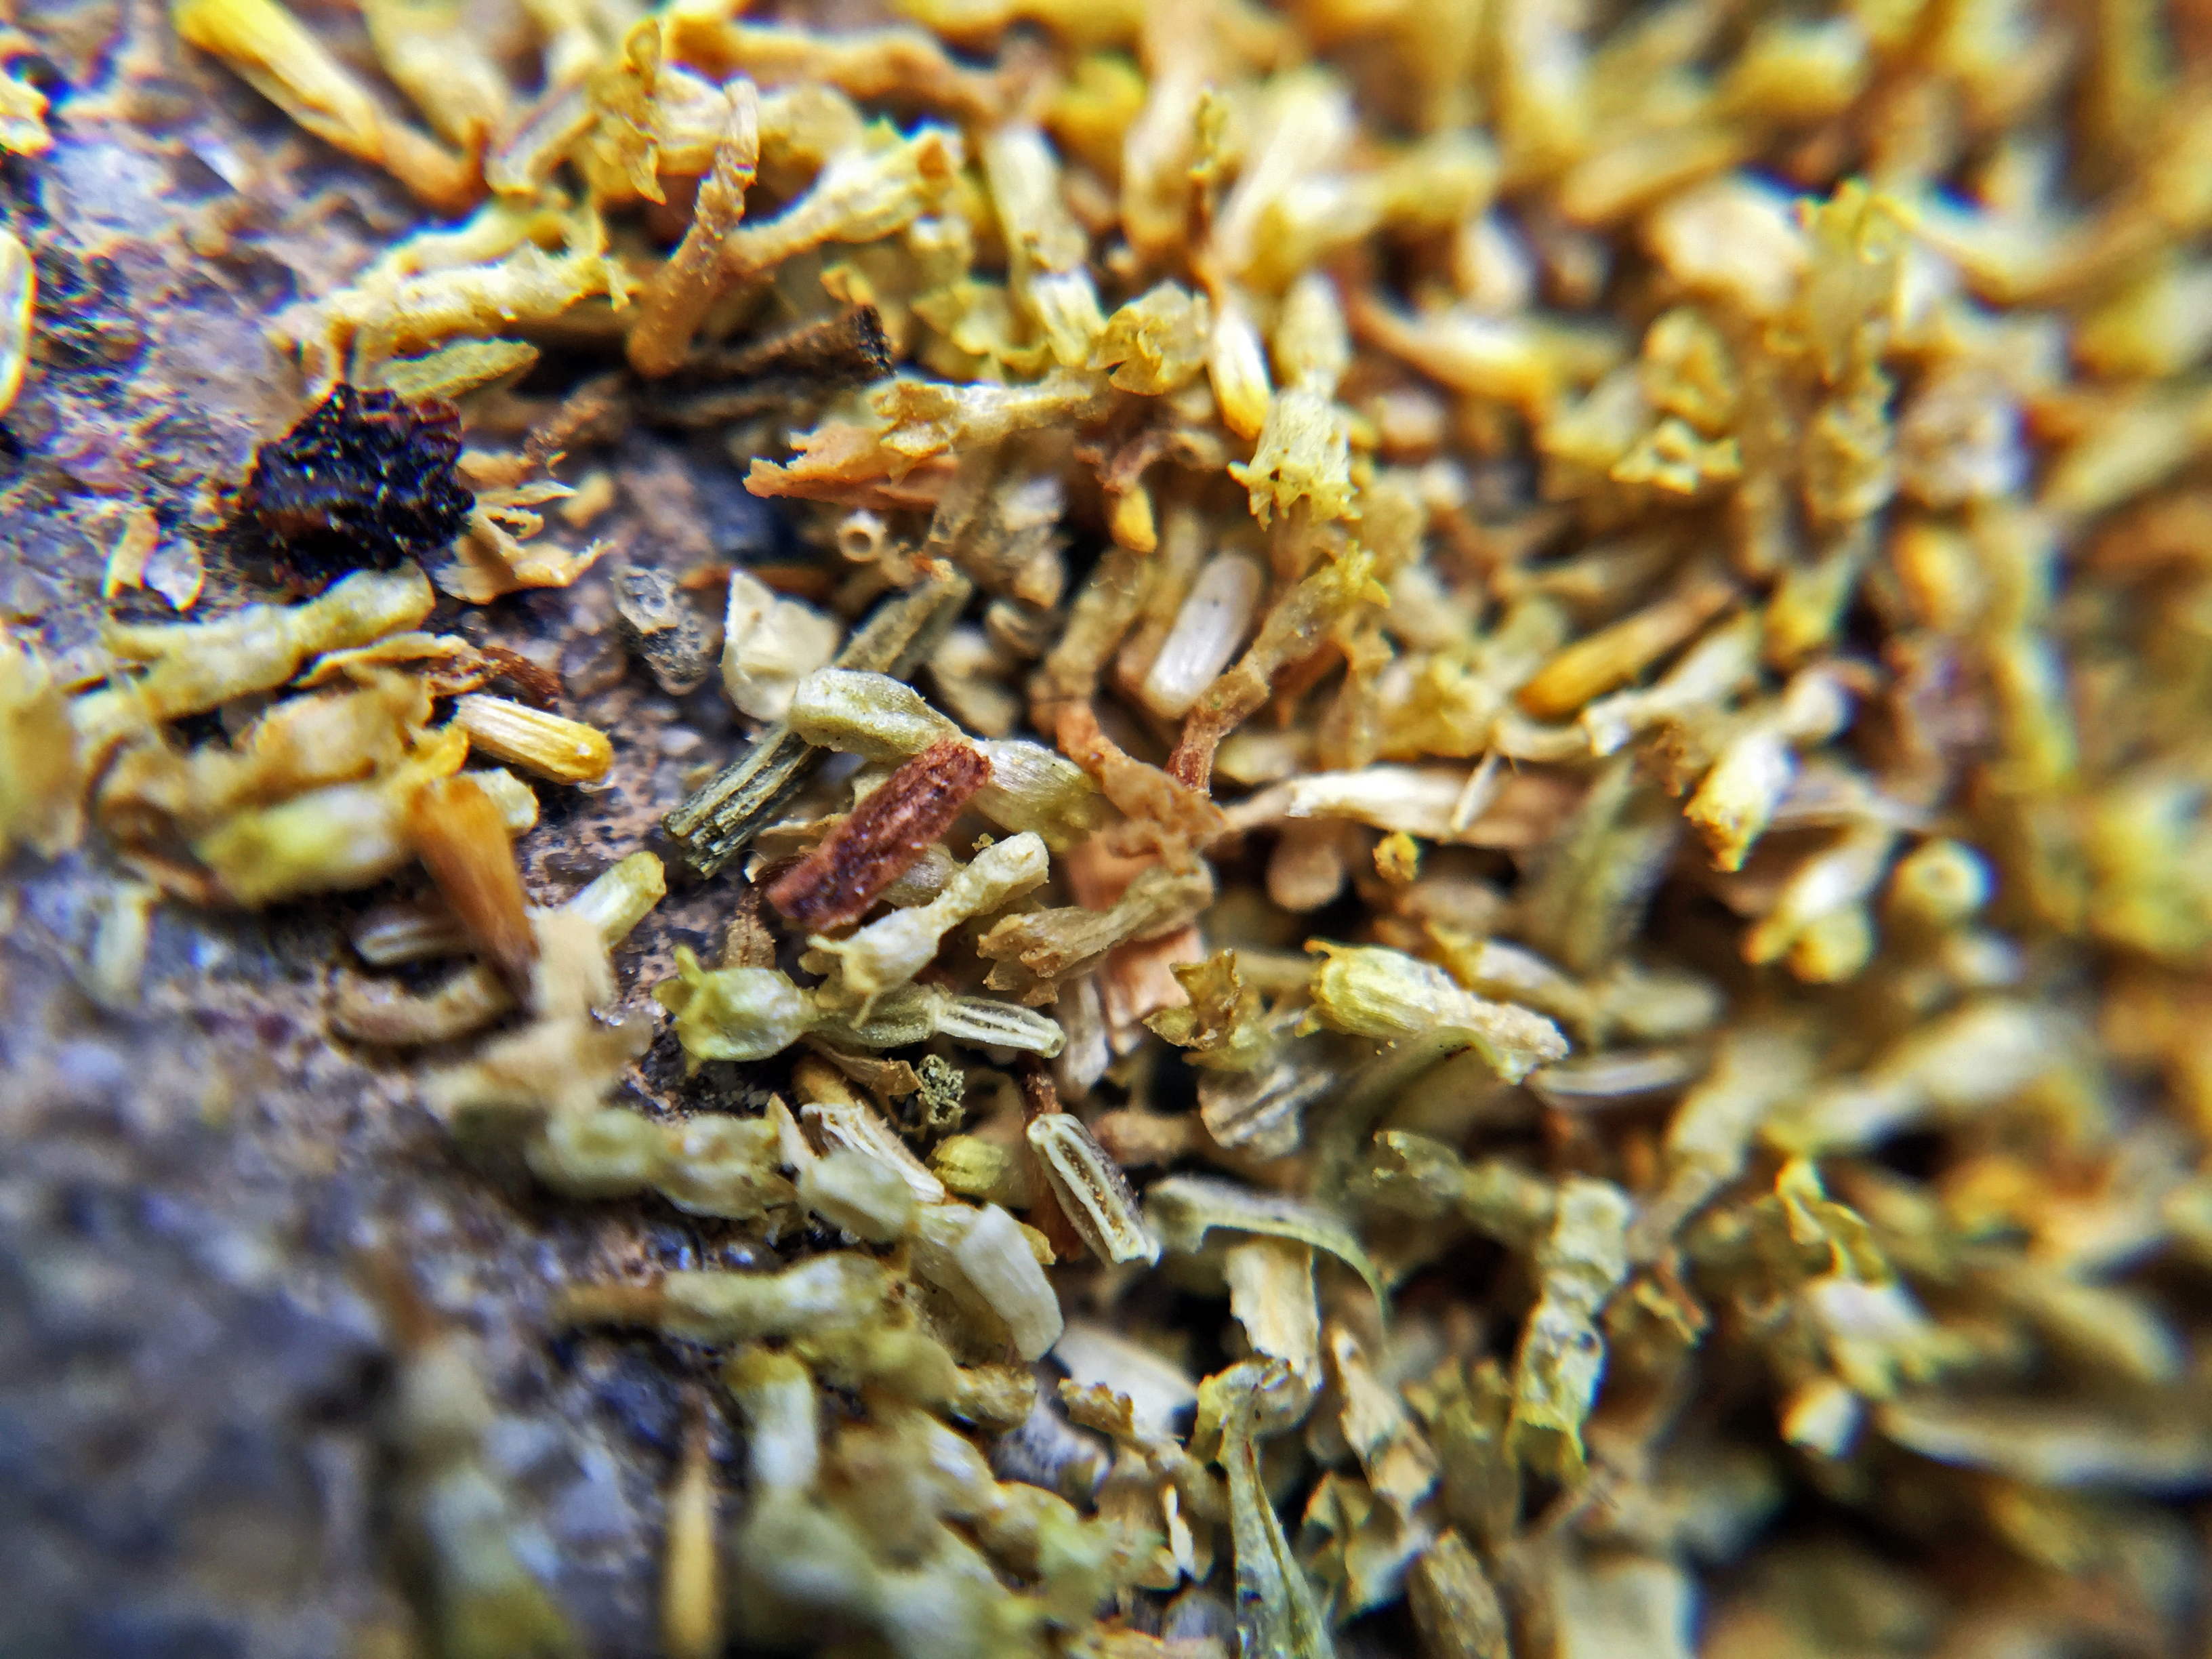 Egyptian Camomile (Metropolitan) ~ loose leaf Macro by Jocilyn Mors is licensed under a Creative Commons Attribution-ShareAlike 4.0 International License.